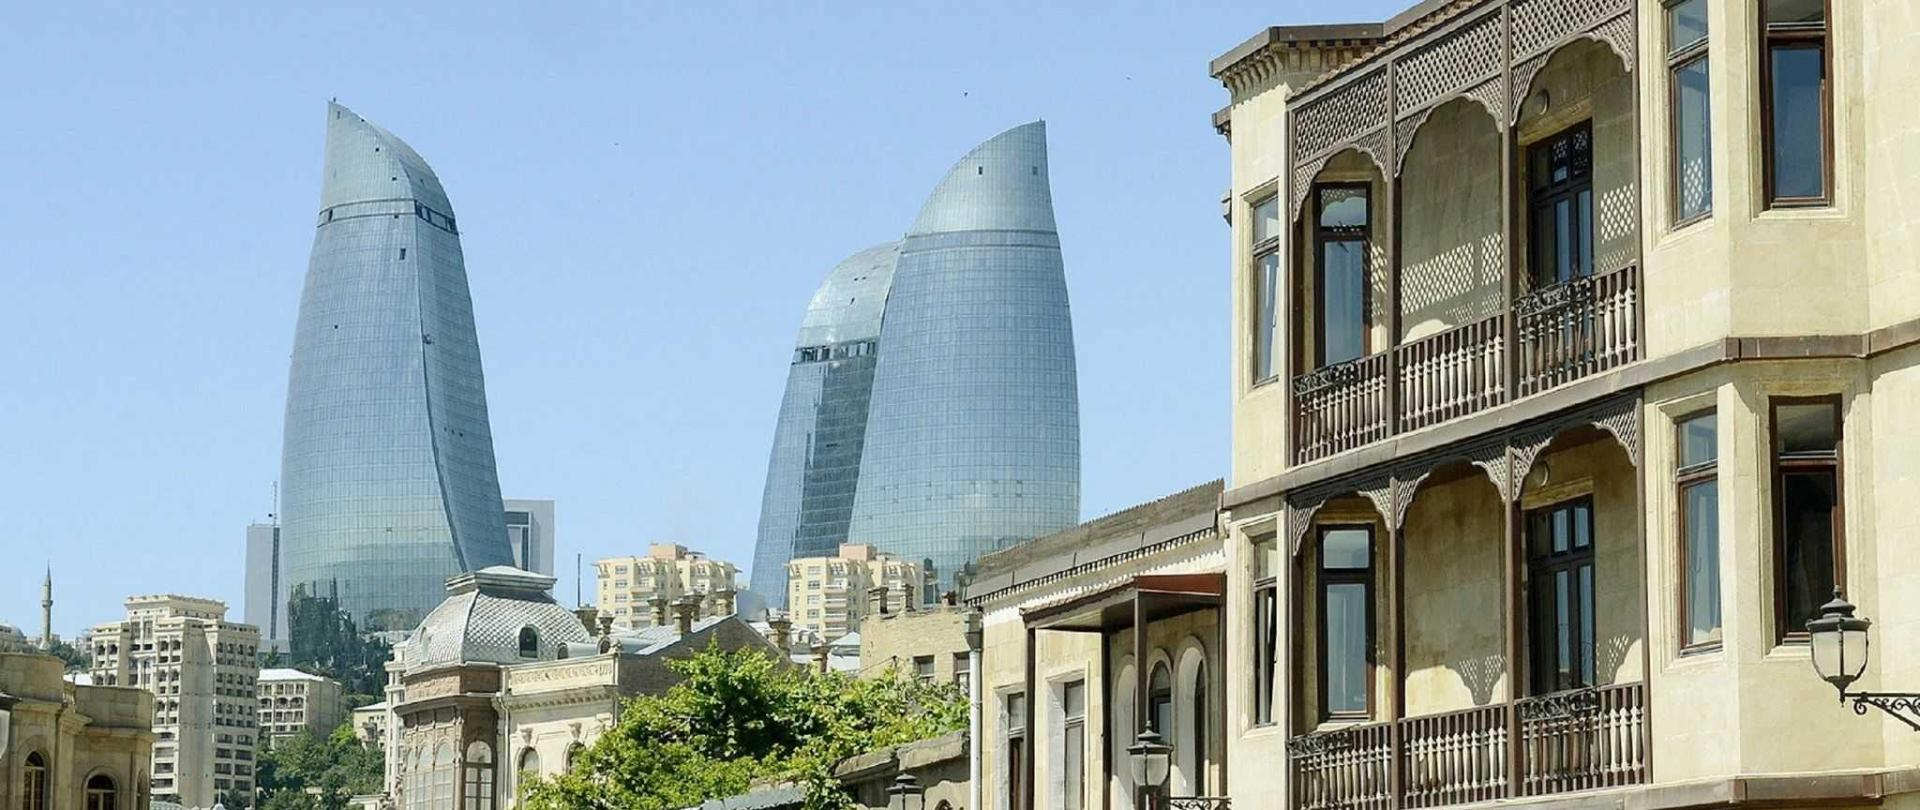 iva-hotel-old-city-baku-03-11-2017-23.jpg